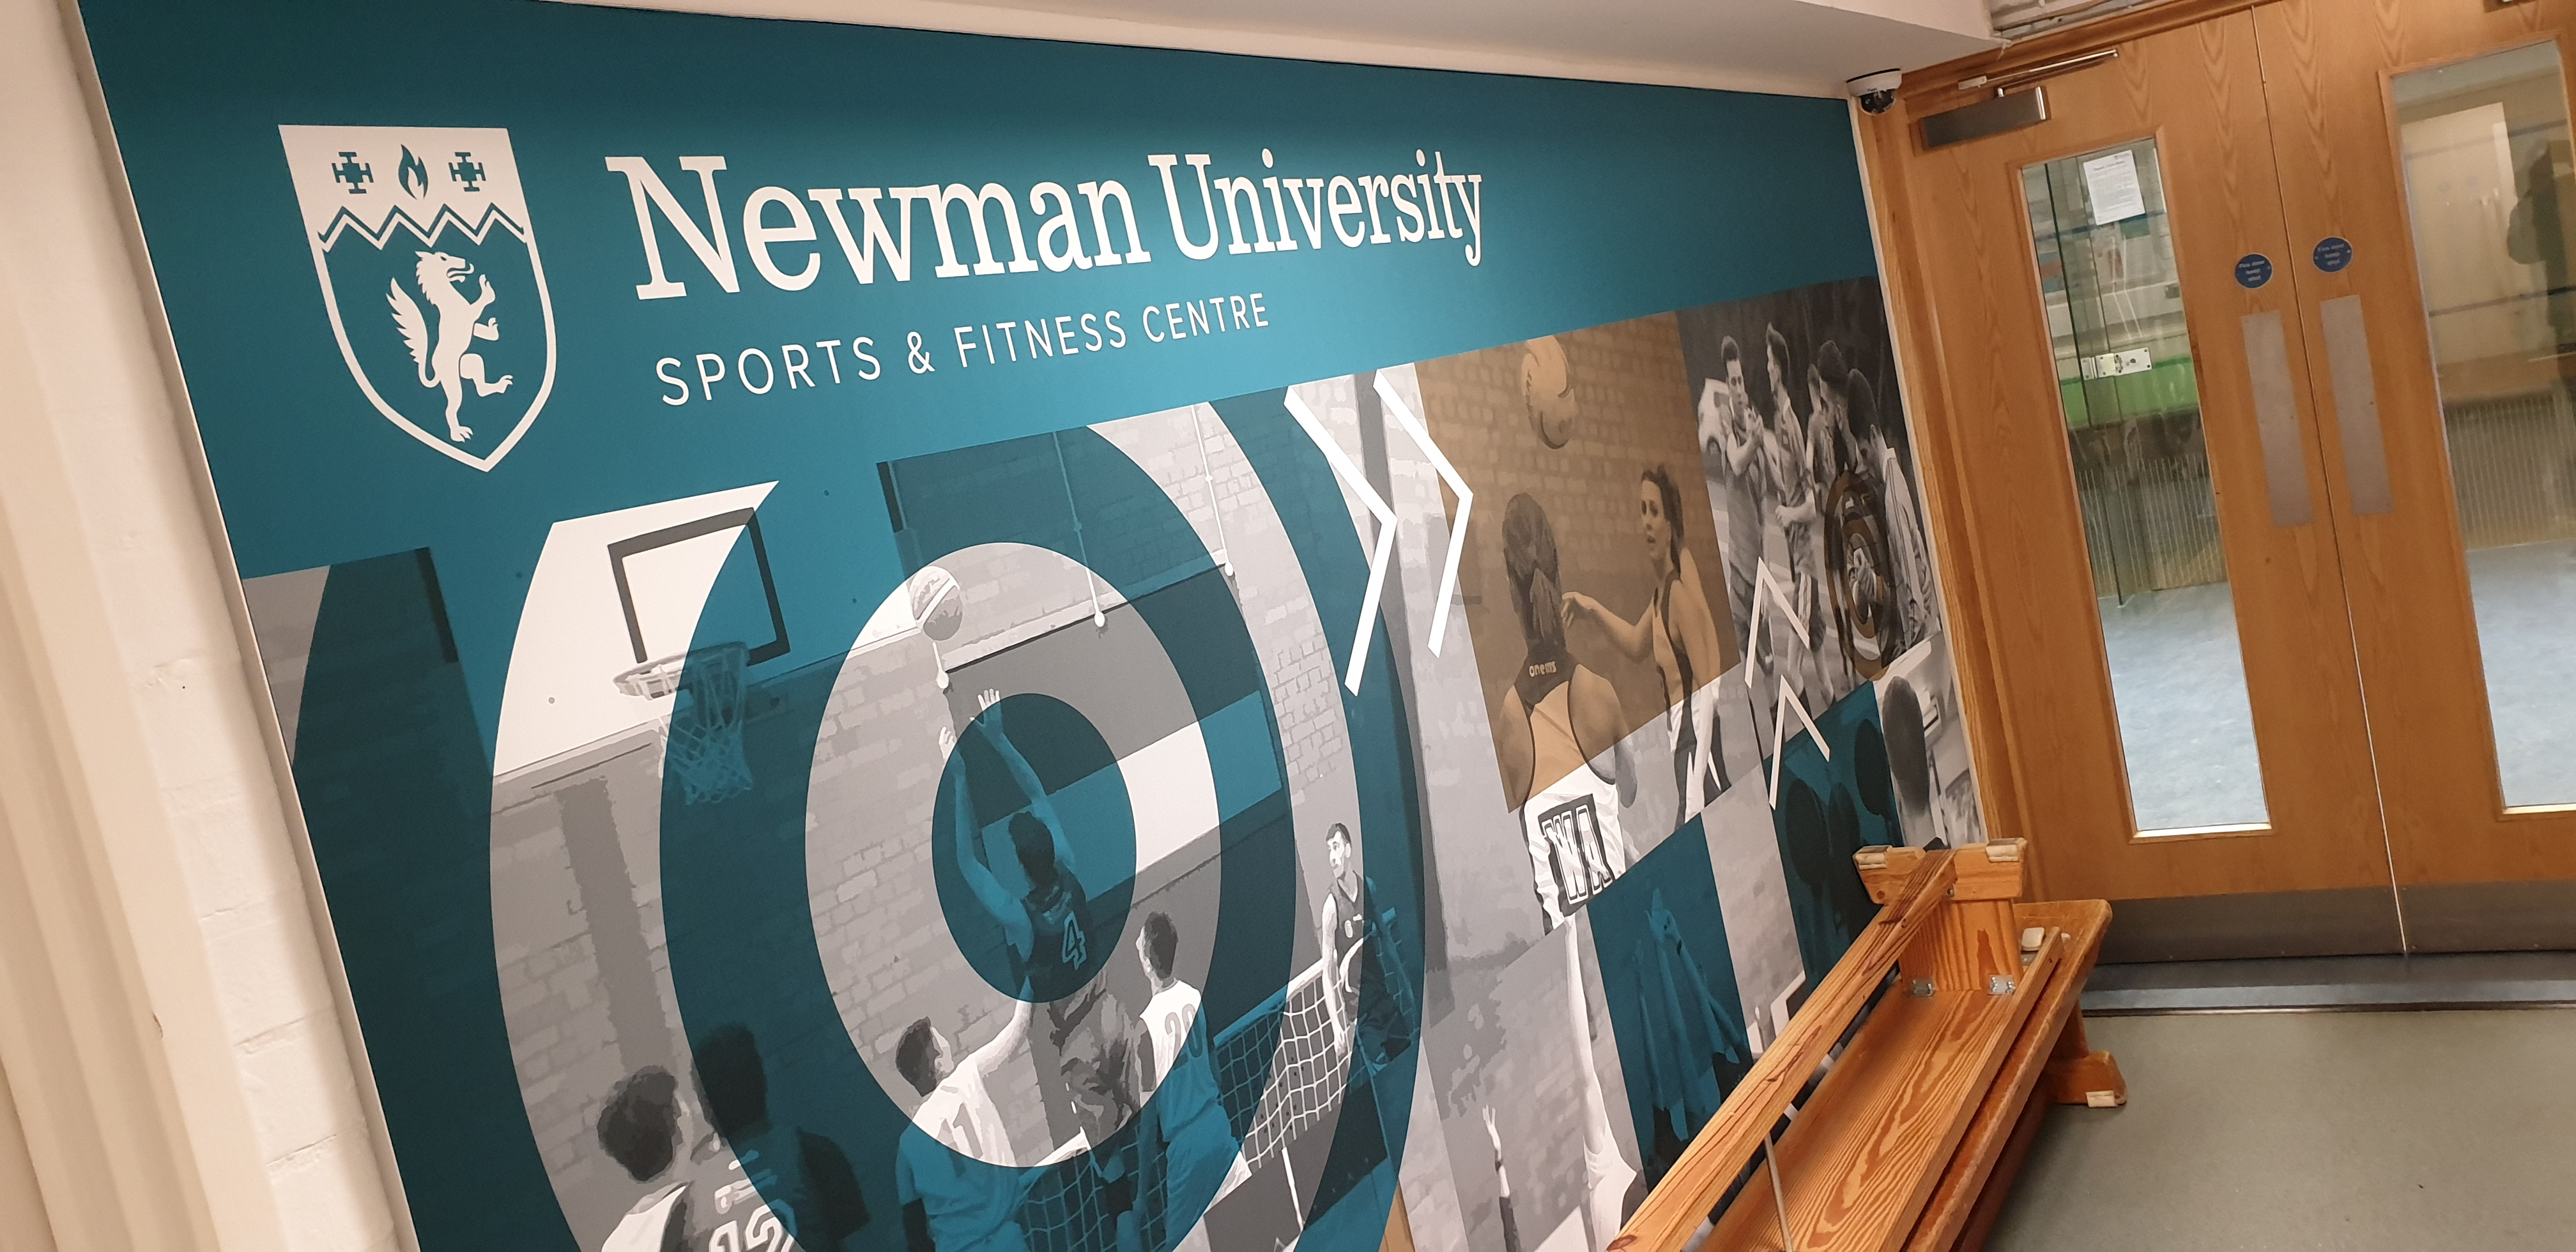 NEWMAN UNIVERSITY STRENGTHENS VIDEO INFRASTRUCTURE